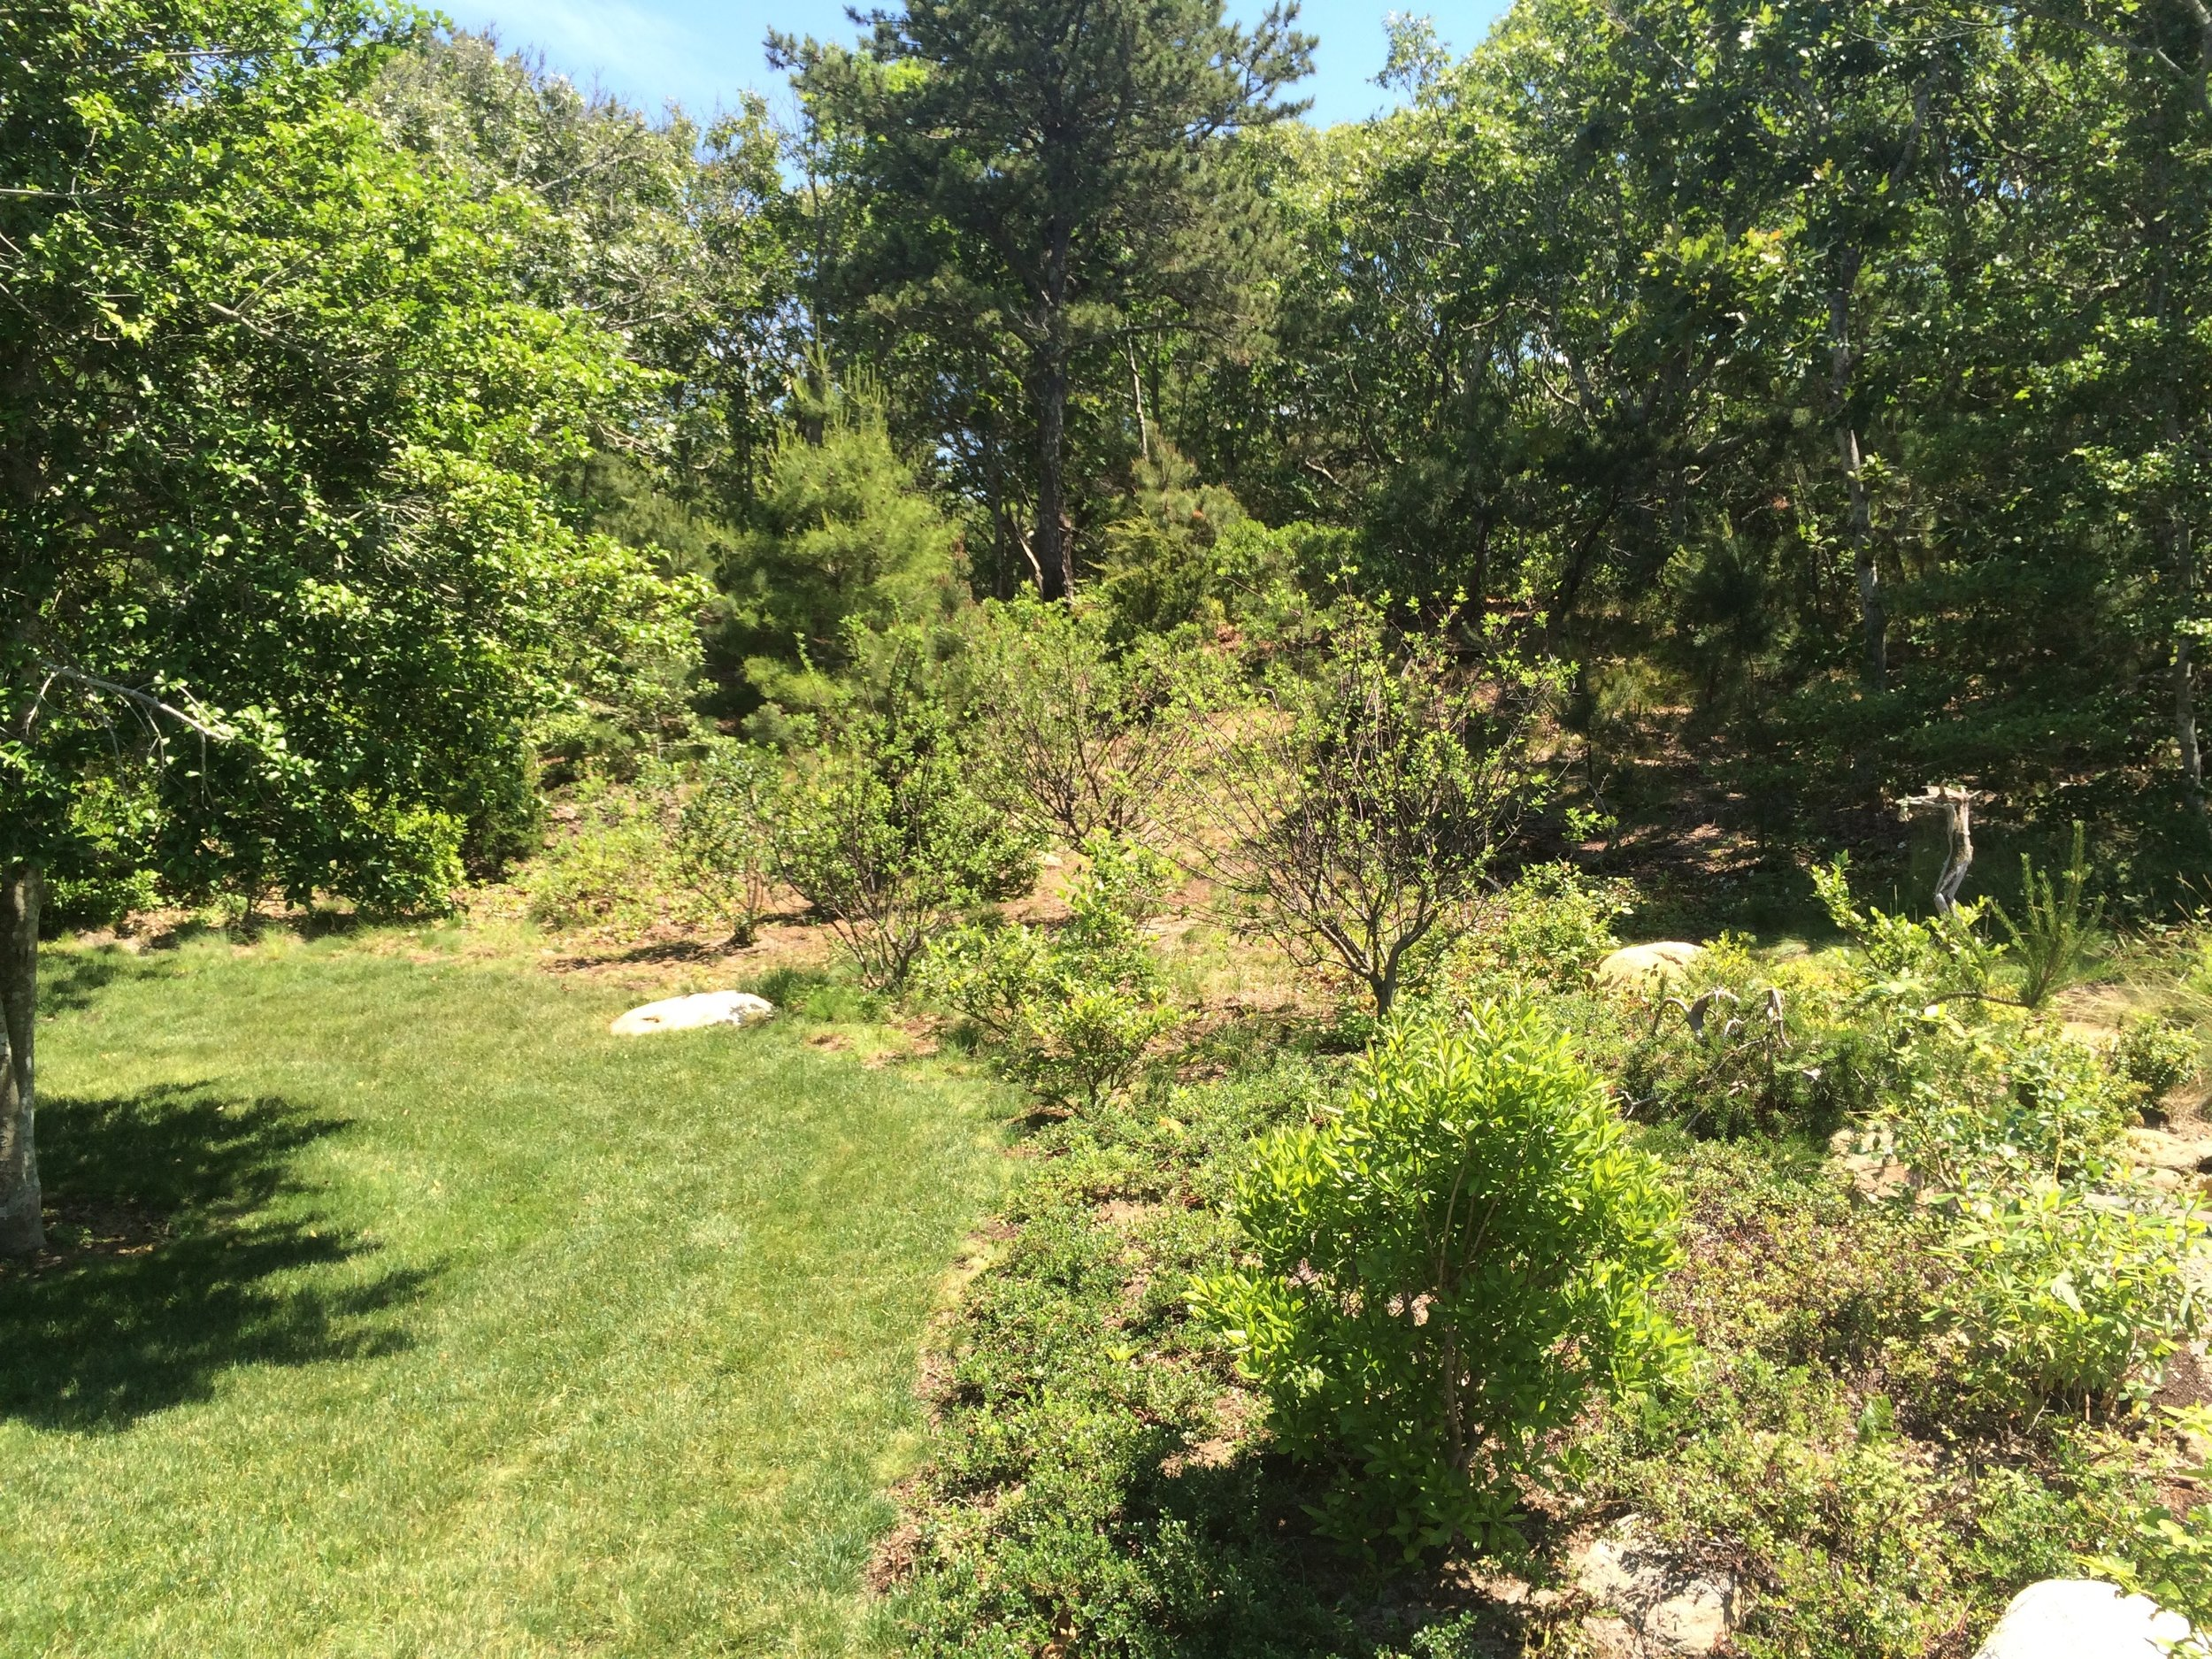 Cape Cod  - Completed naturalization process. Removing gratuitous lawn to introduce natives back to property.